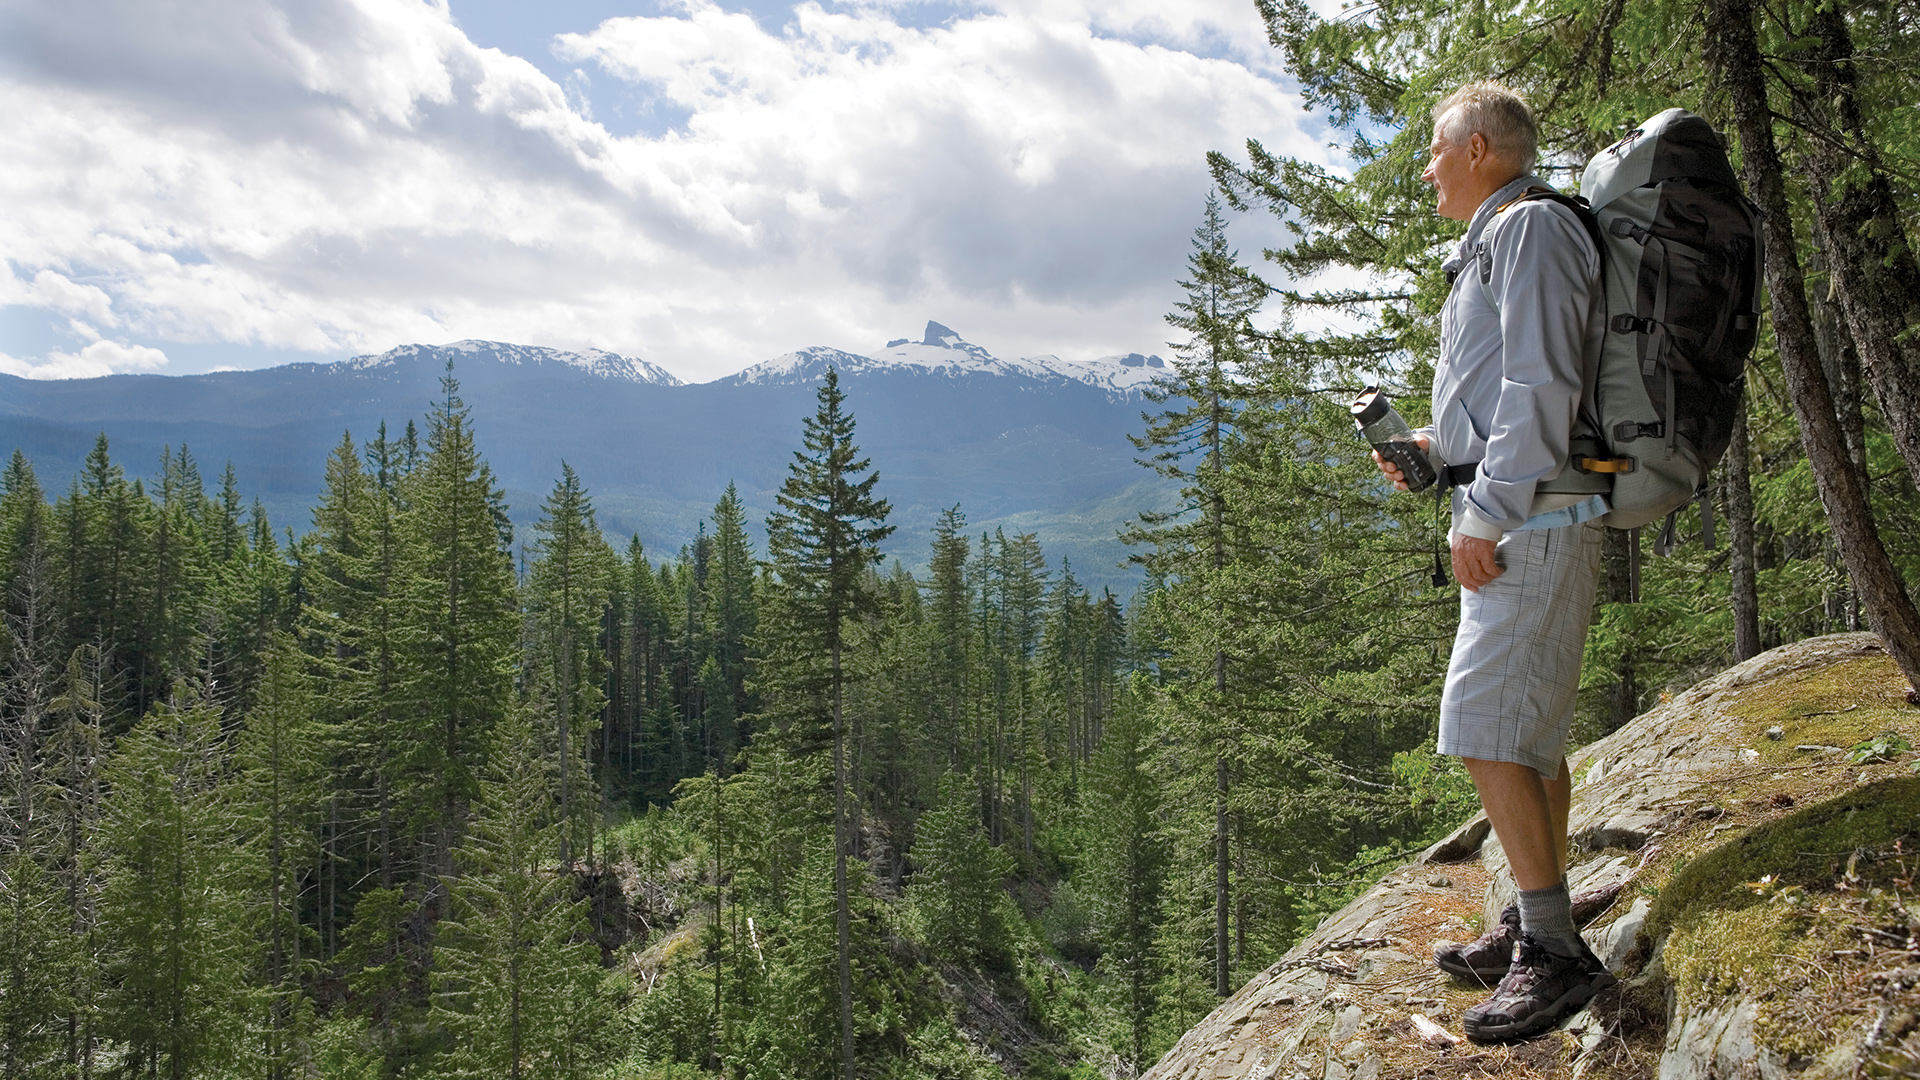 Explore the beauty of Northern Nevada by hiking the Sierra Nevada foothills and nearby Mt. Rose